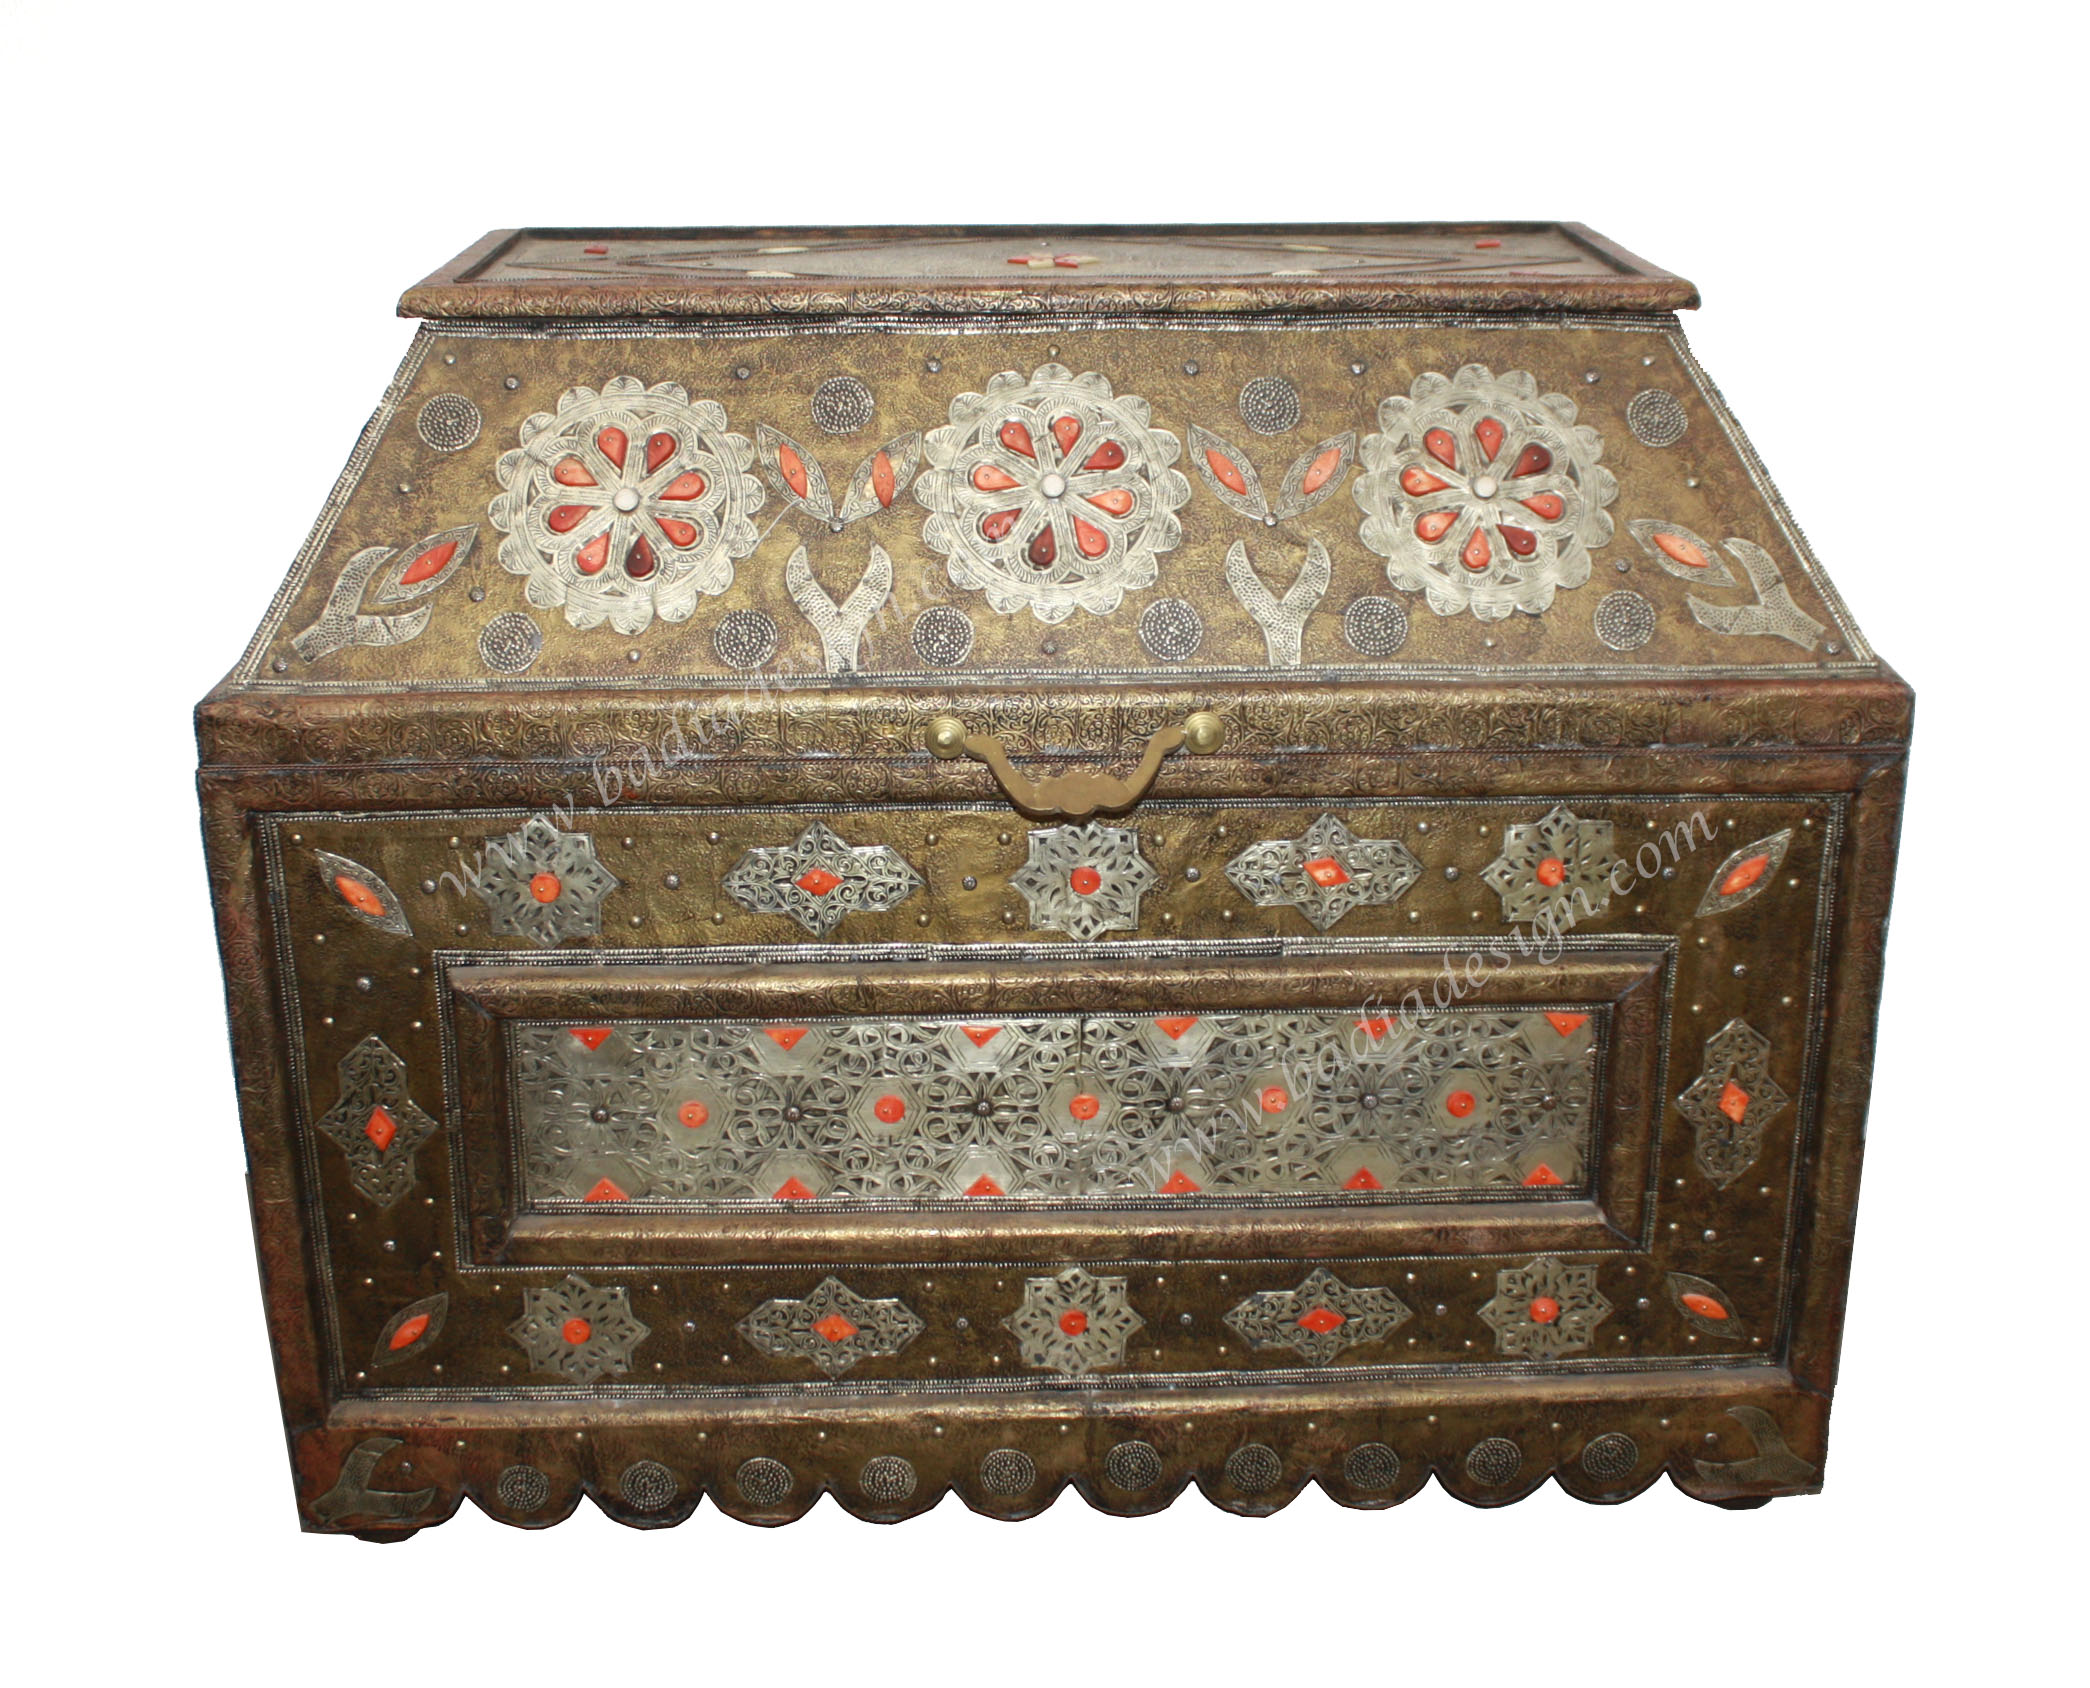 moroccan-metal-storage-trunk-mb-t008-1.jpg